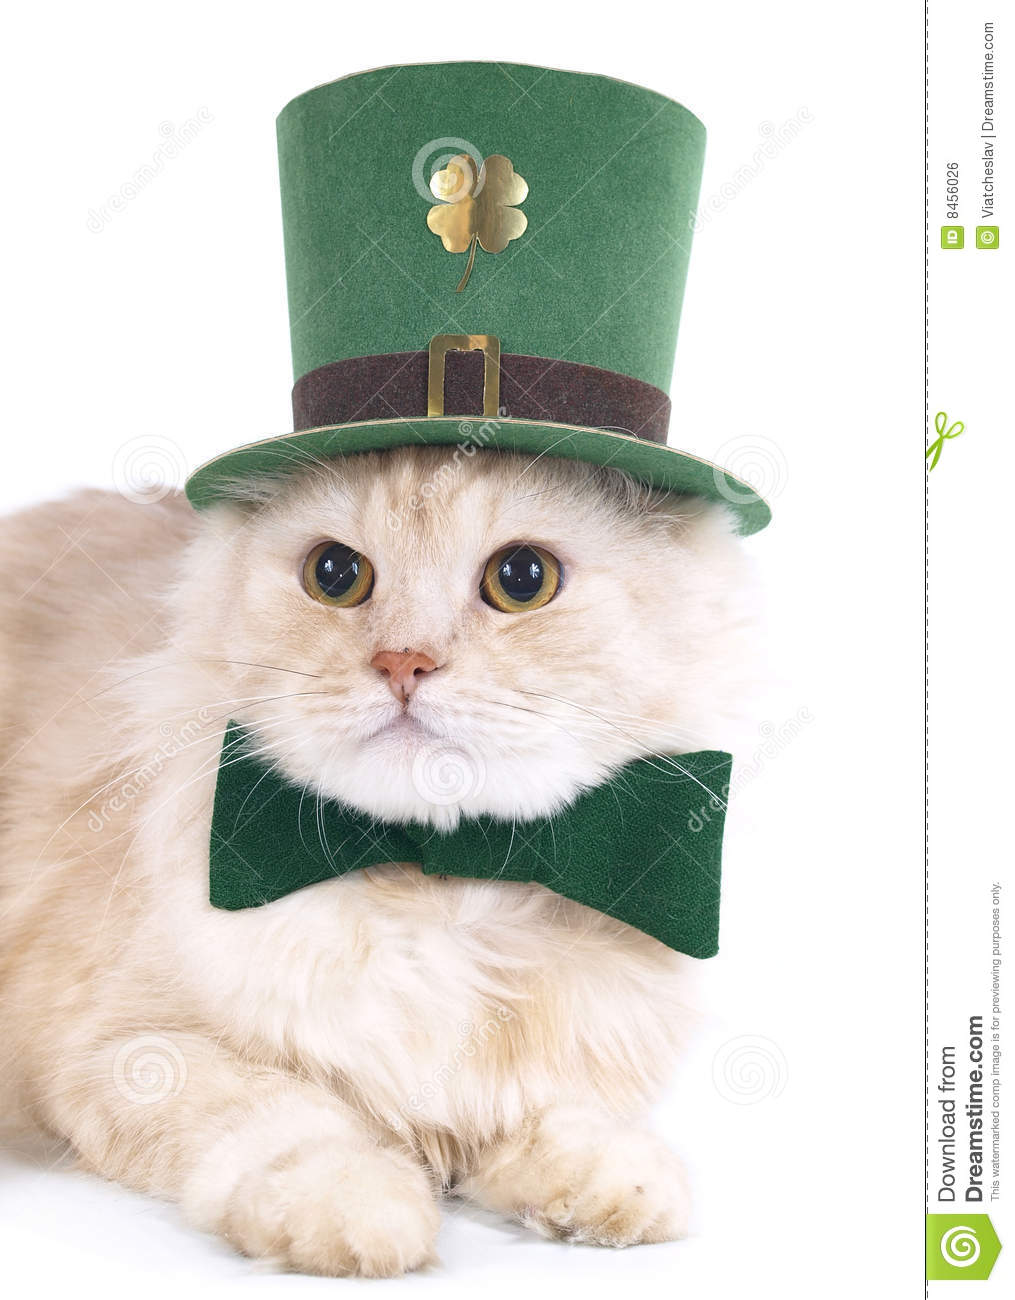 Creamy St. Patrick's Day Cat Royalty Free Stock Image - Image: 8456026